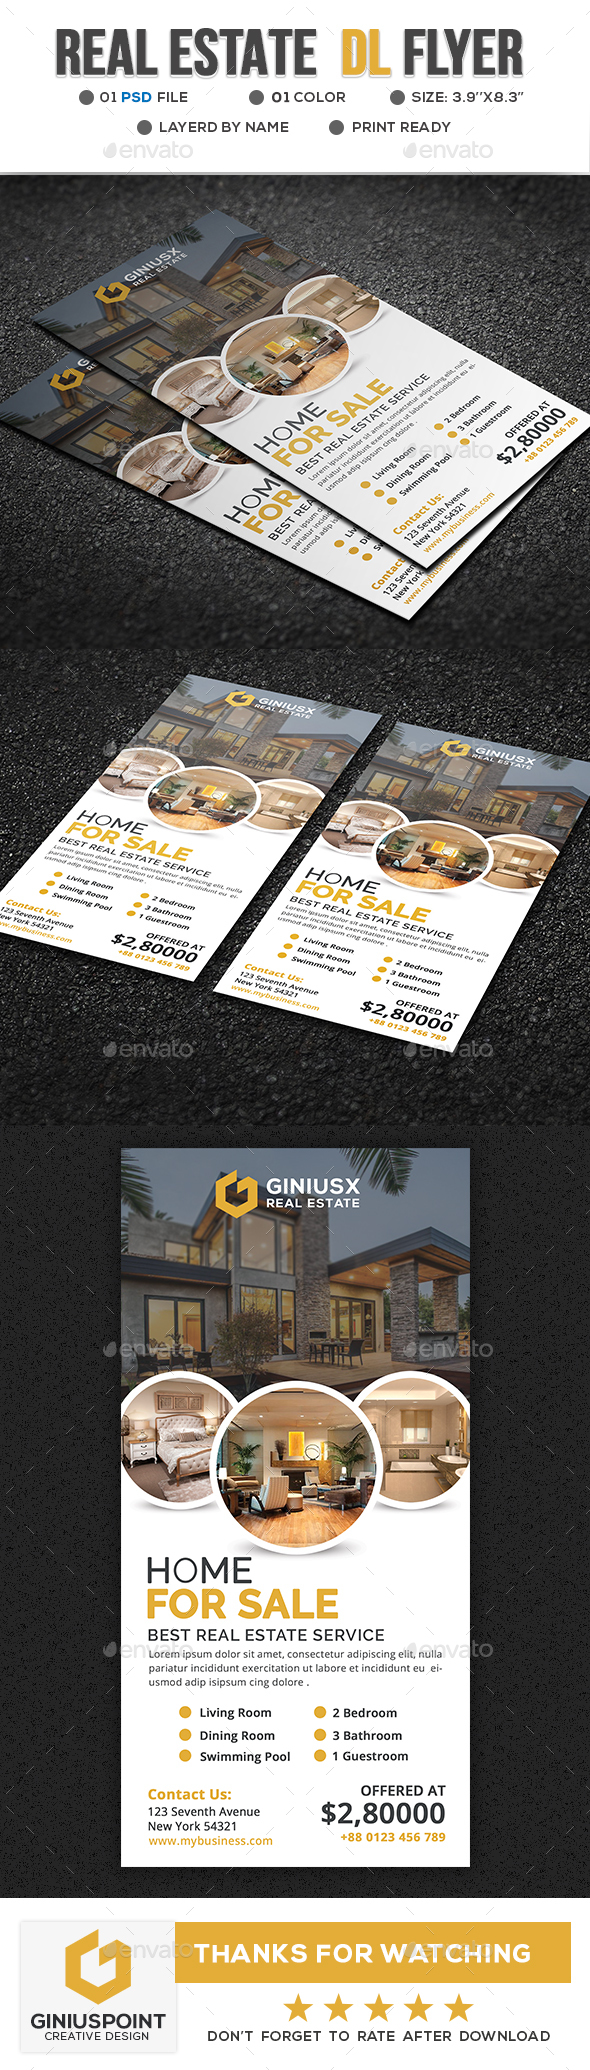 GraphicRiver Real Estate DL Flyer 20674825